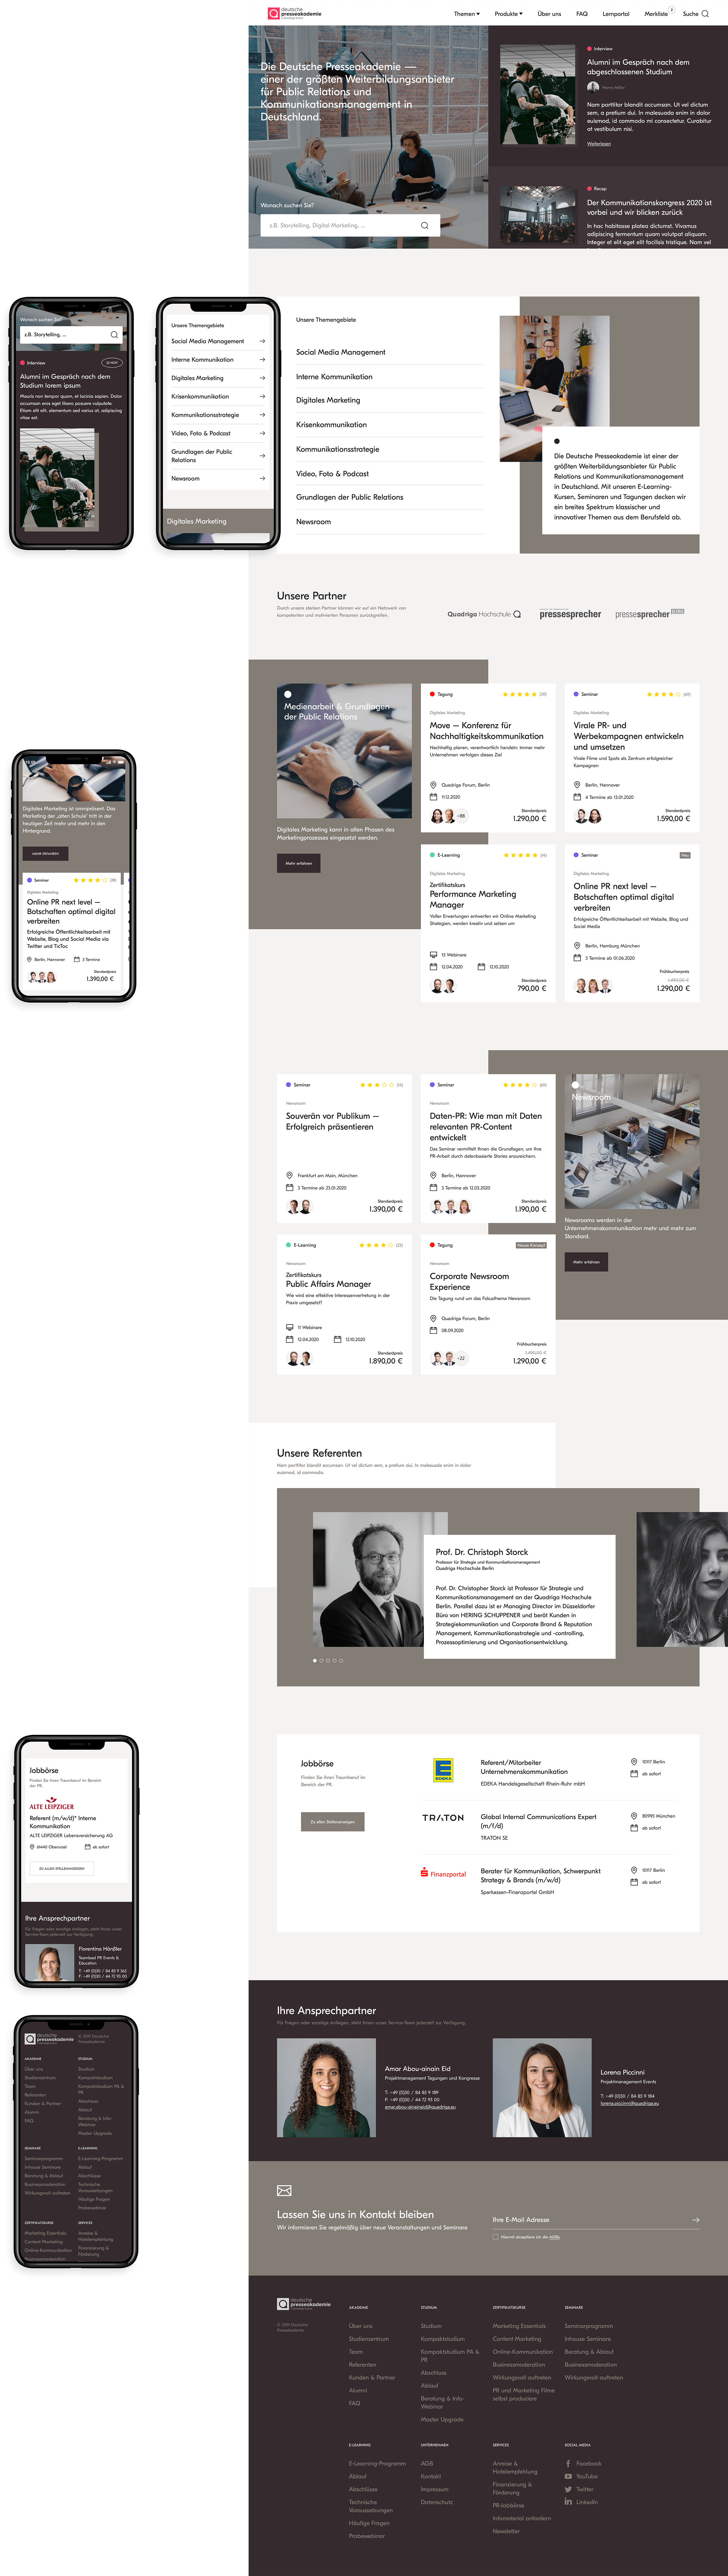 Depak home page full view